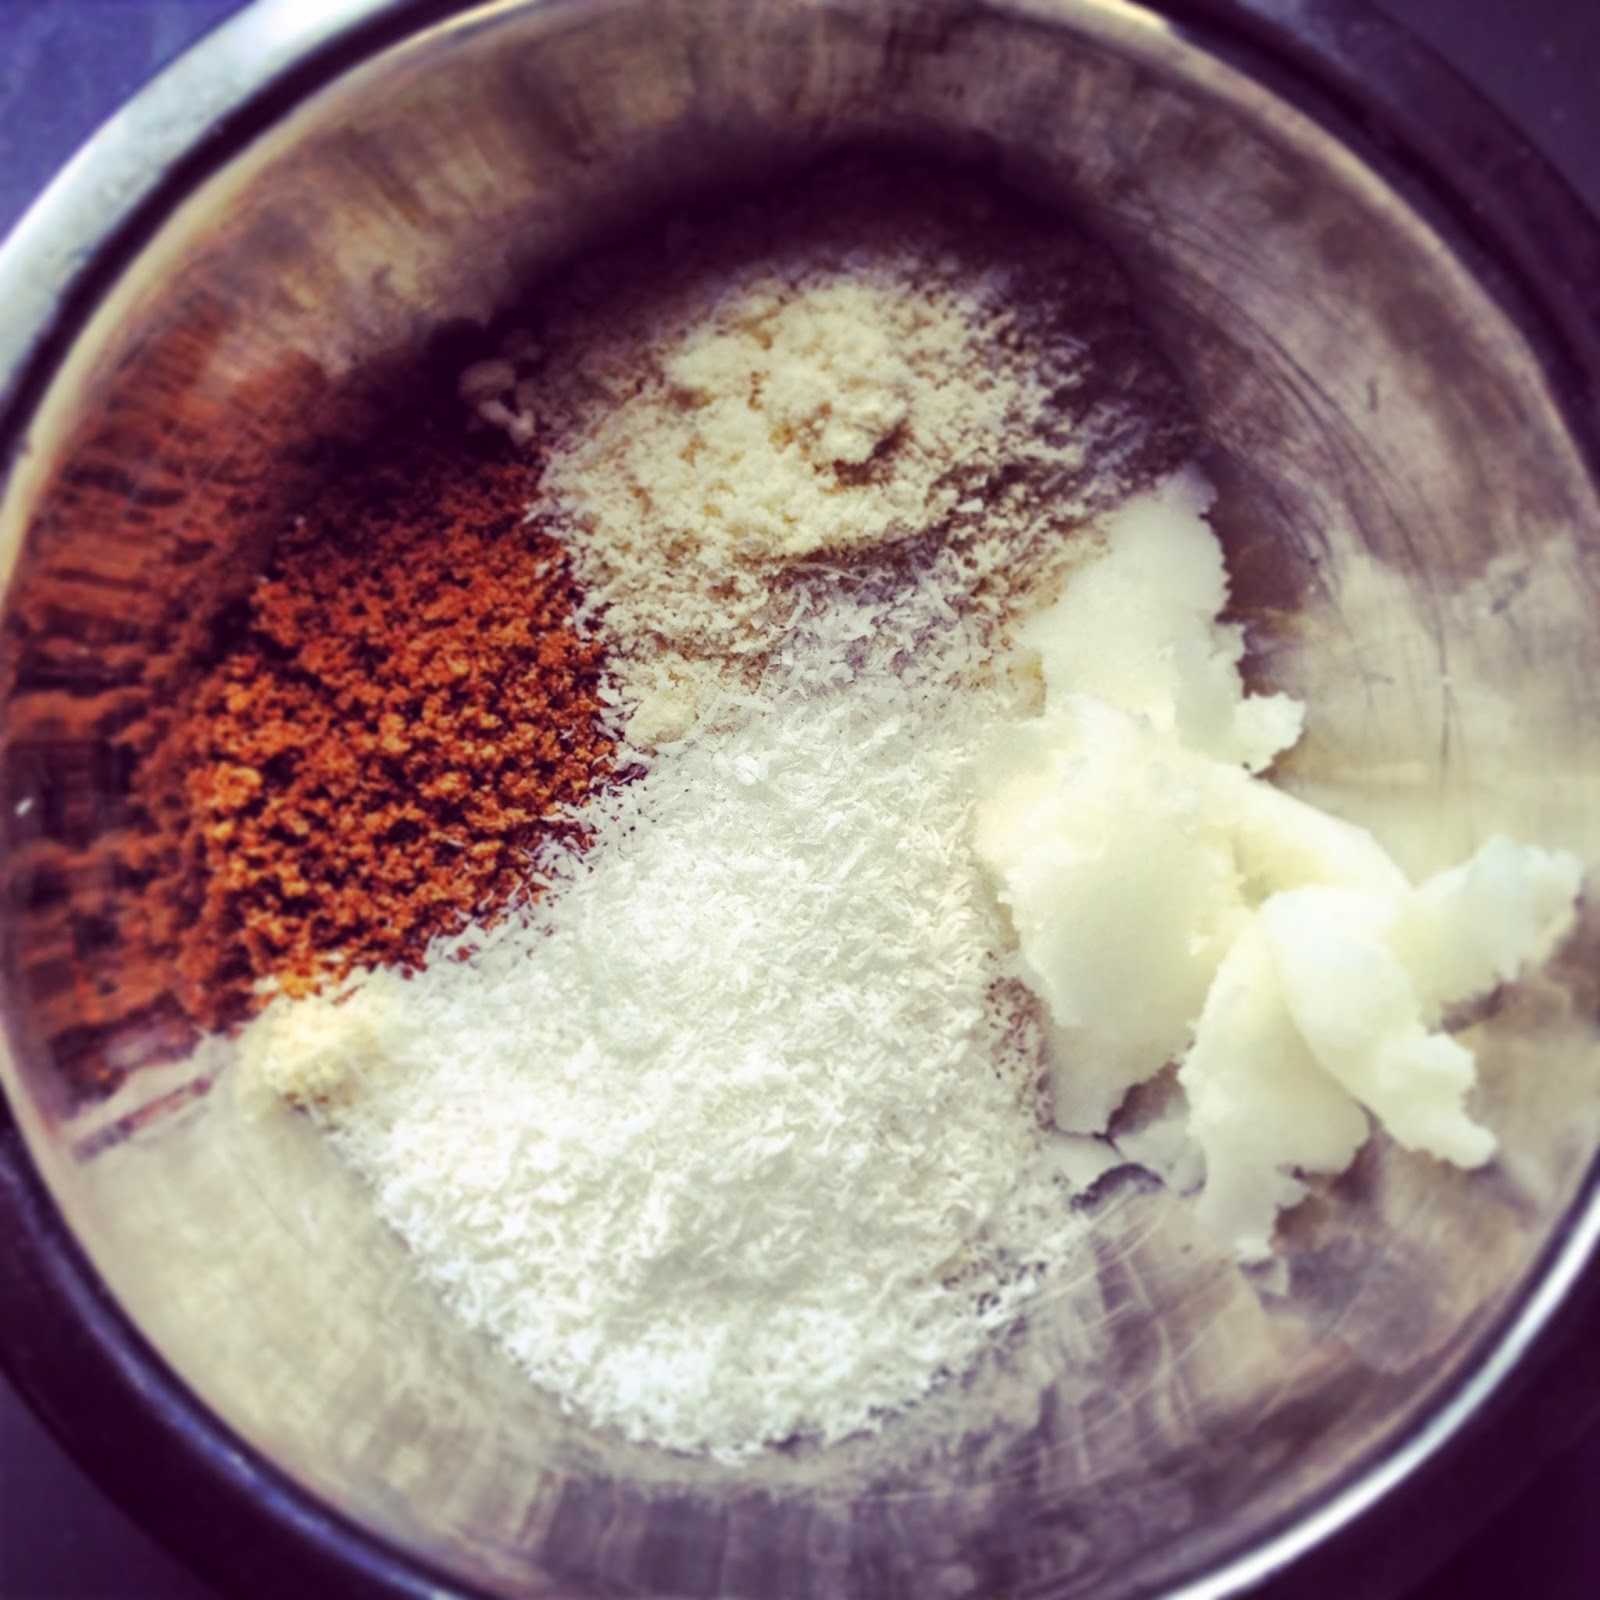 Coconut Sugar, Coconut Flour, Coconut Oil And Desiccated Coconut Image